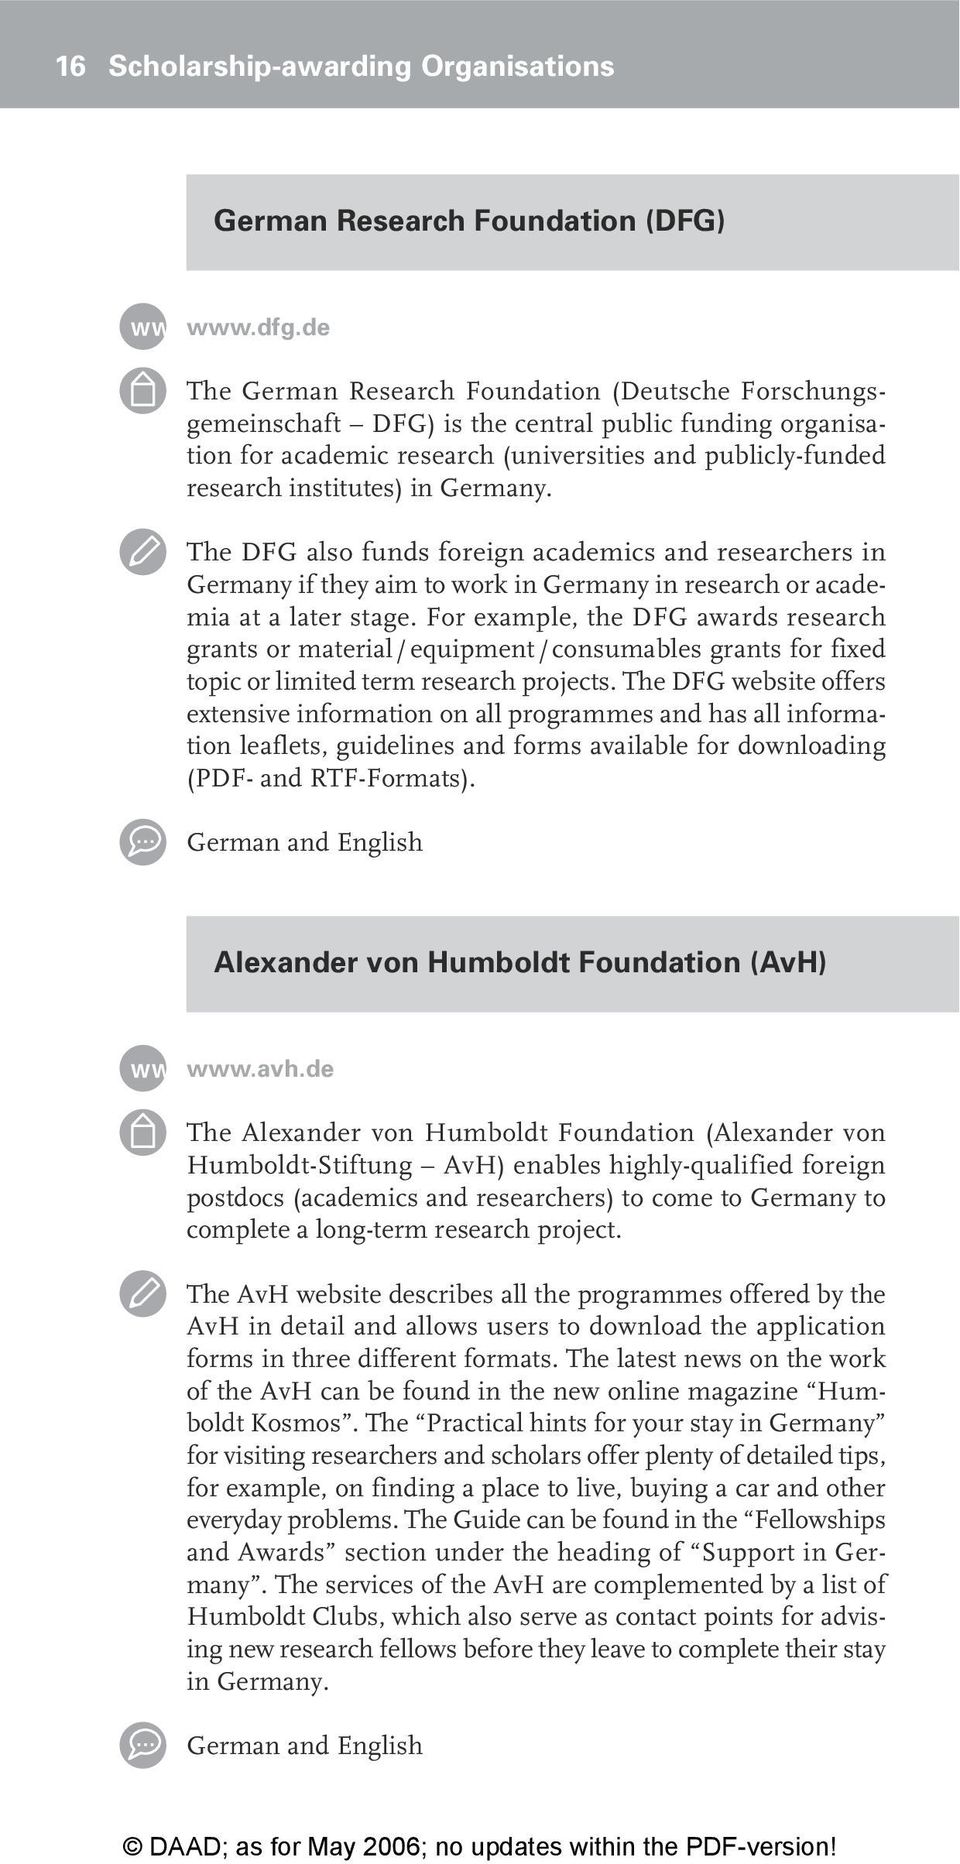 Germany. The DFG also funds foreign academics and researchers in Germany if they aim to work in Germany in research or academia at a later stage.